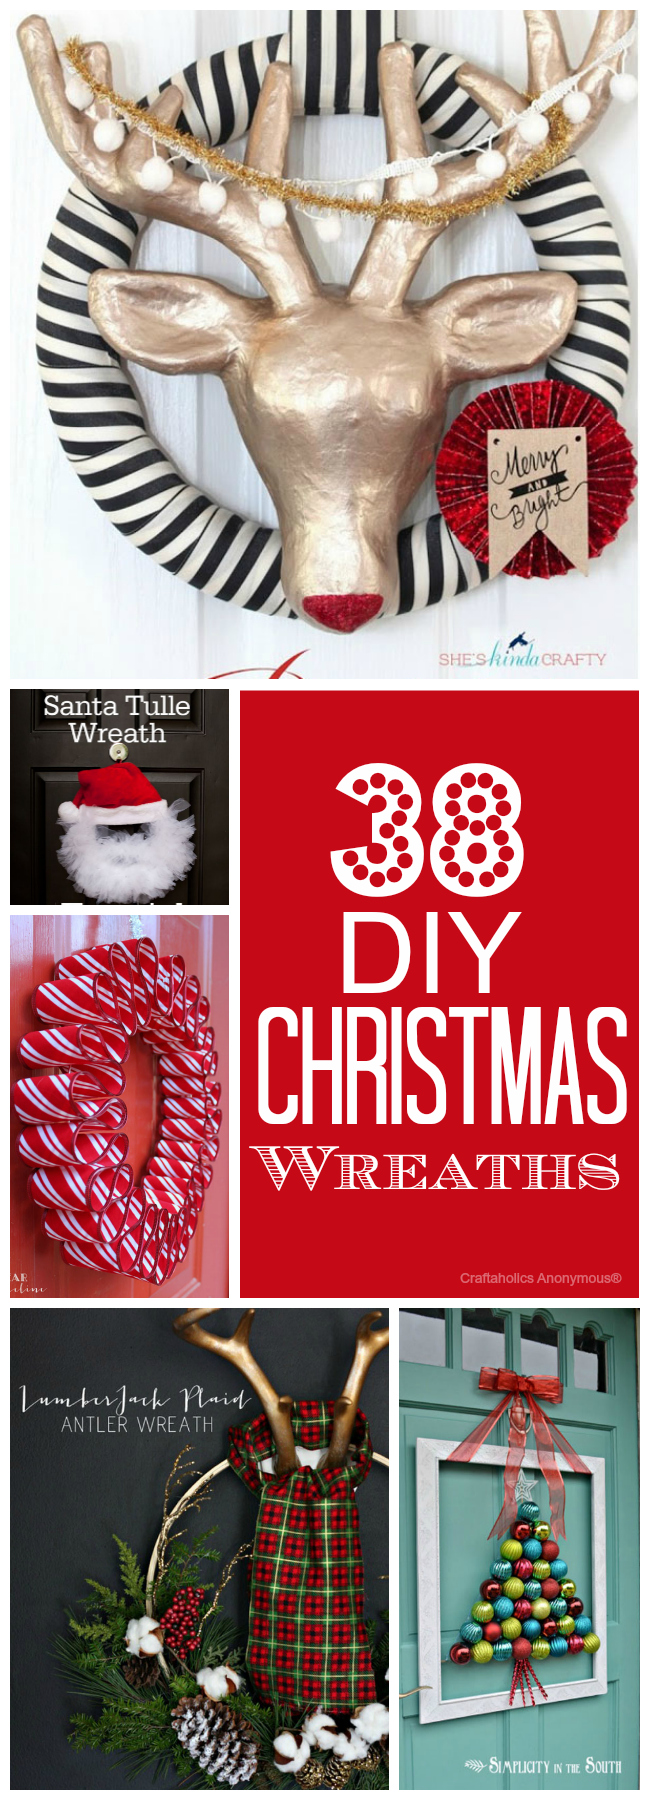 38 Awesome DIY Christmas Wreaths to make!